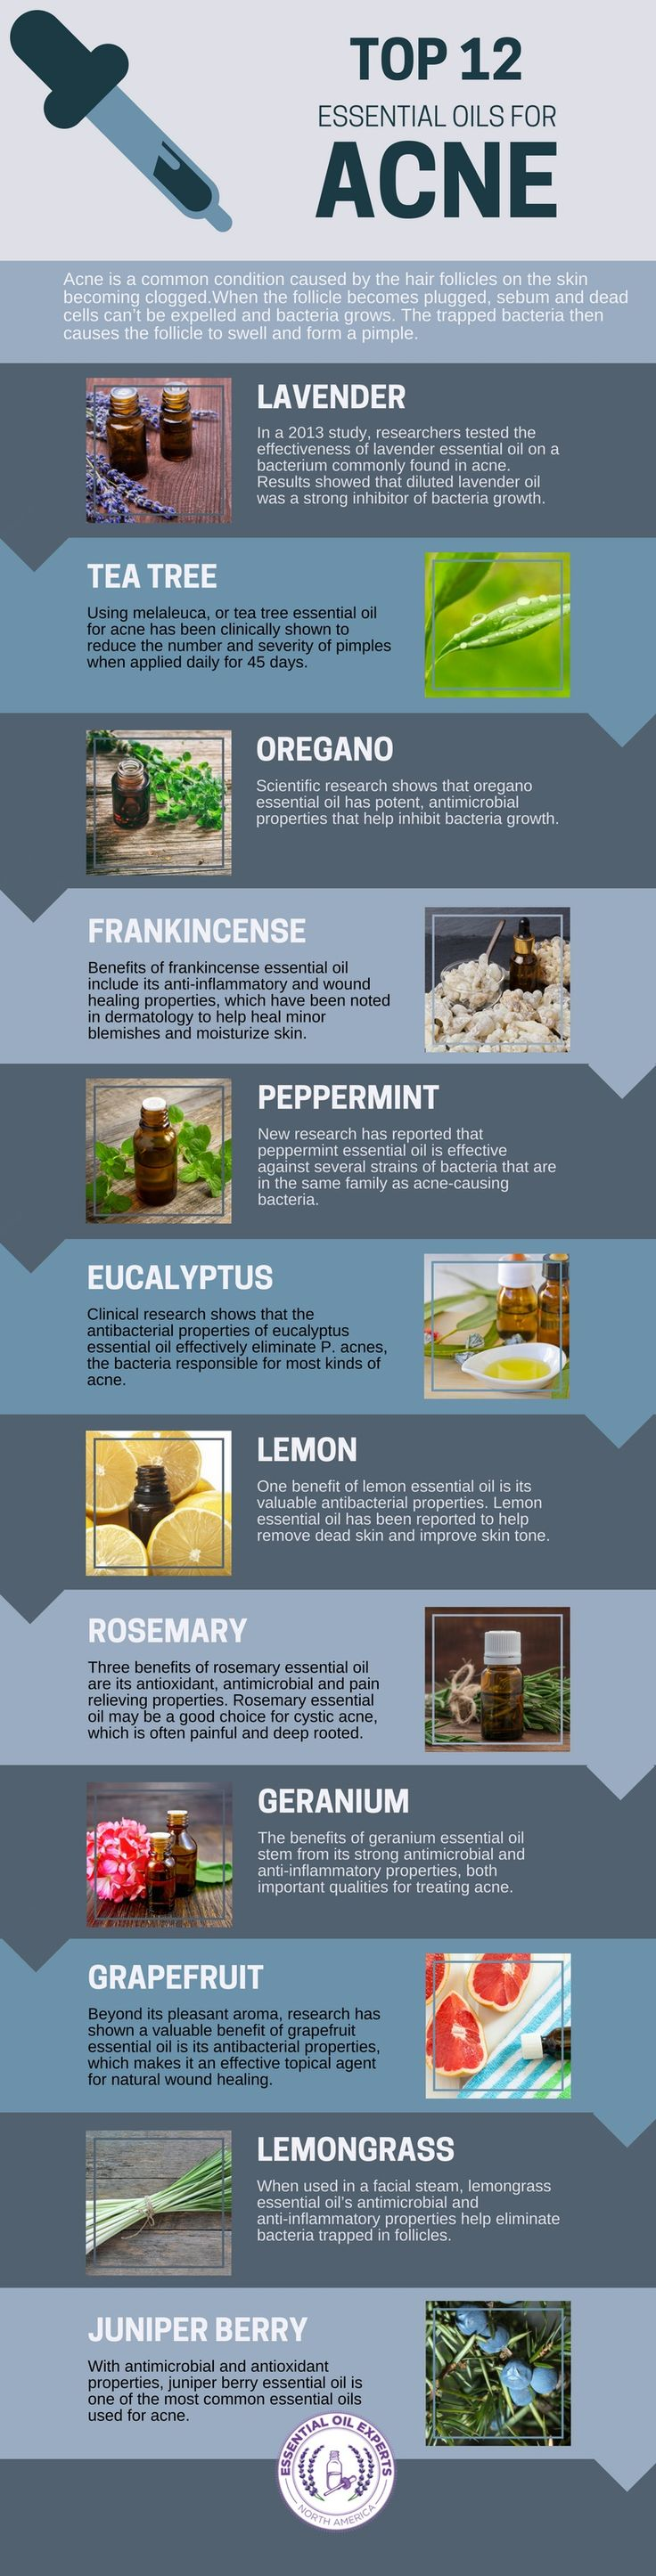 Top 12 Essential Oils for Acne, Pimples, Blackheads & Blemishes.